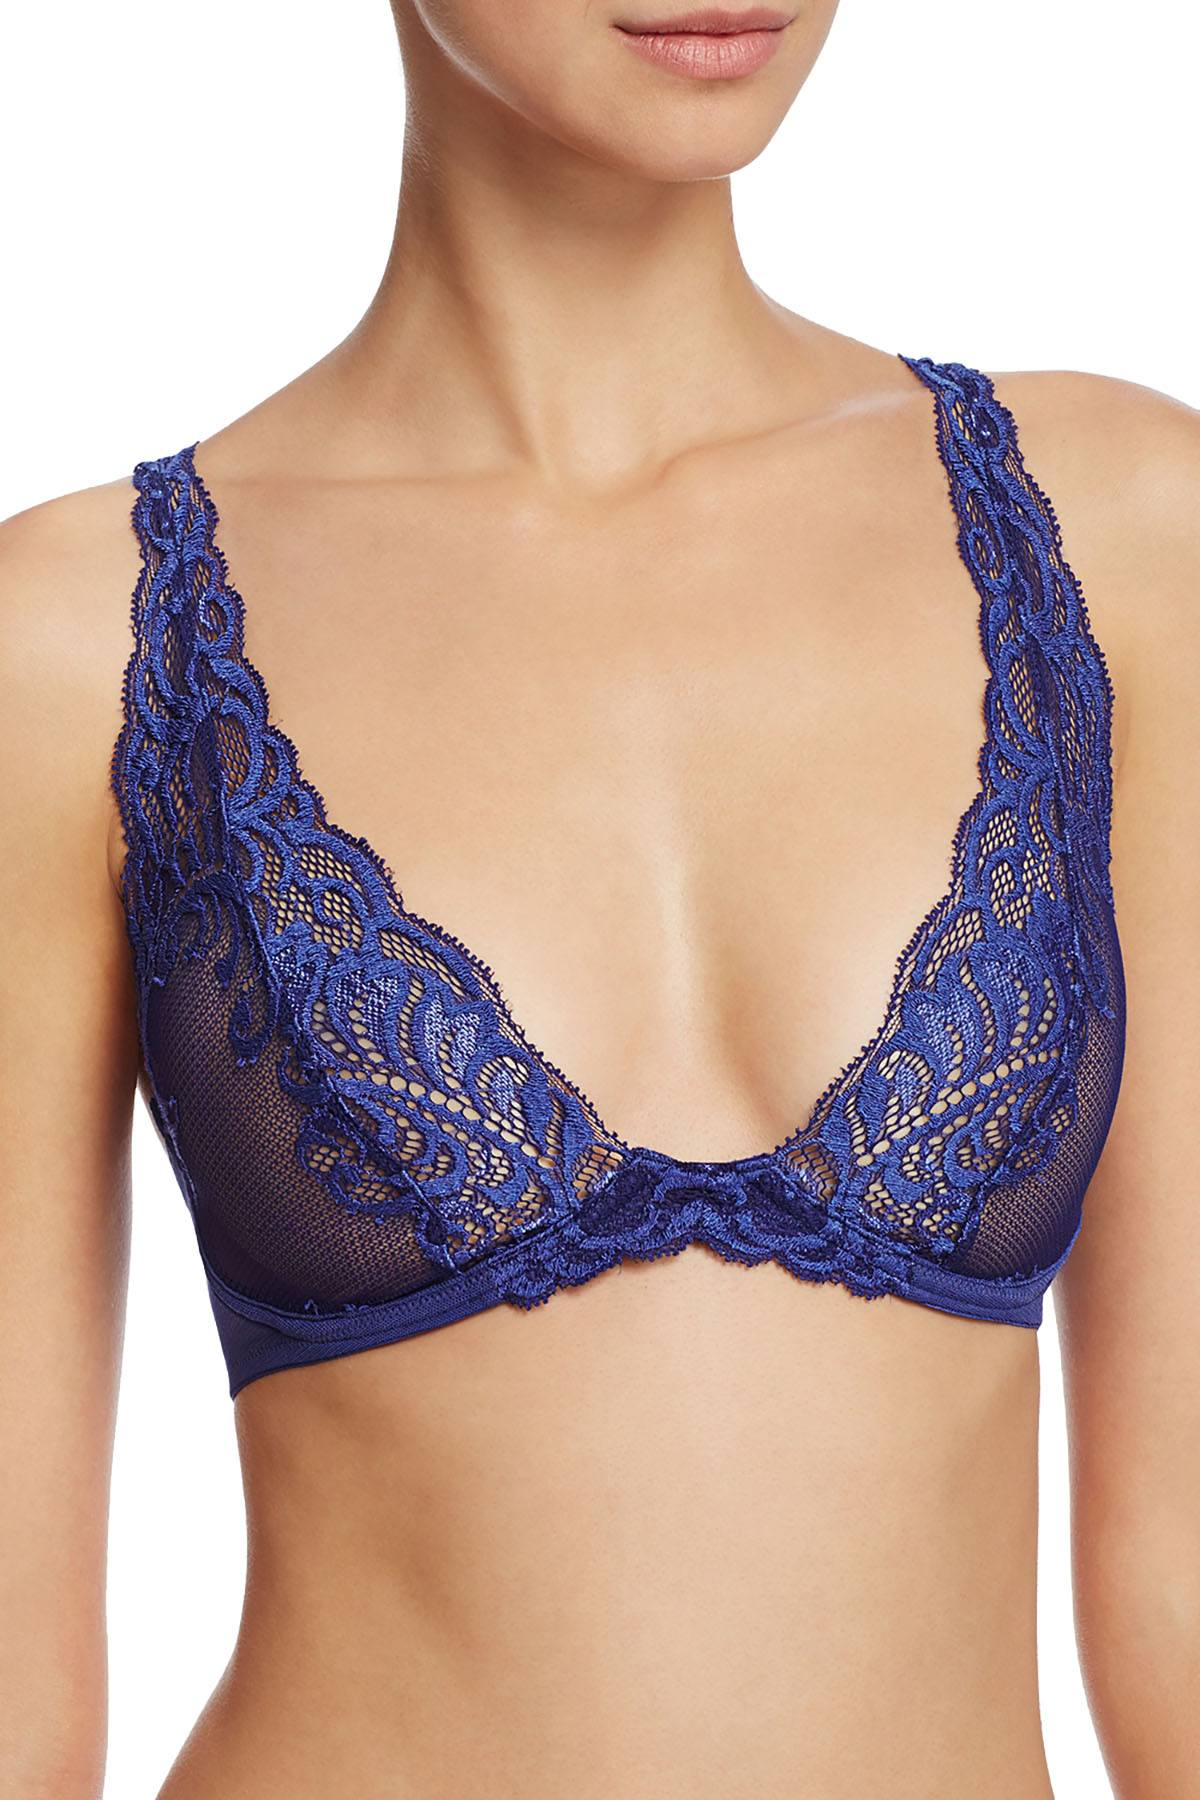 Natori Blueberry Feathers Feathers Wireless Sheer Lace Bra